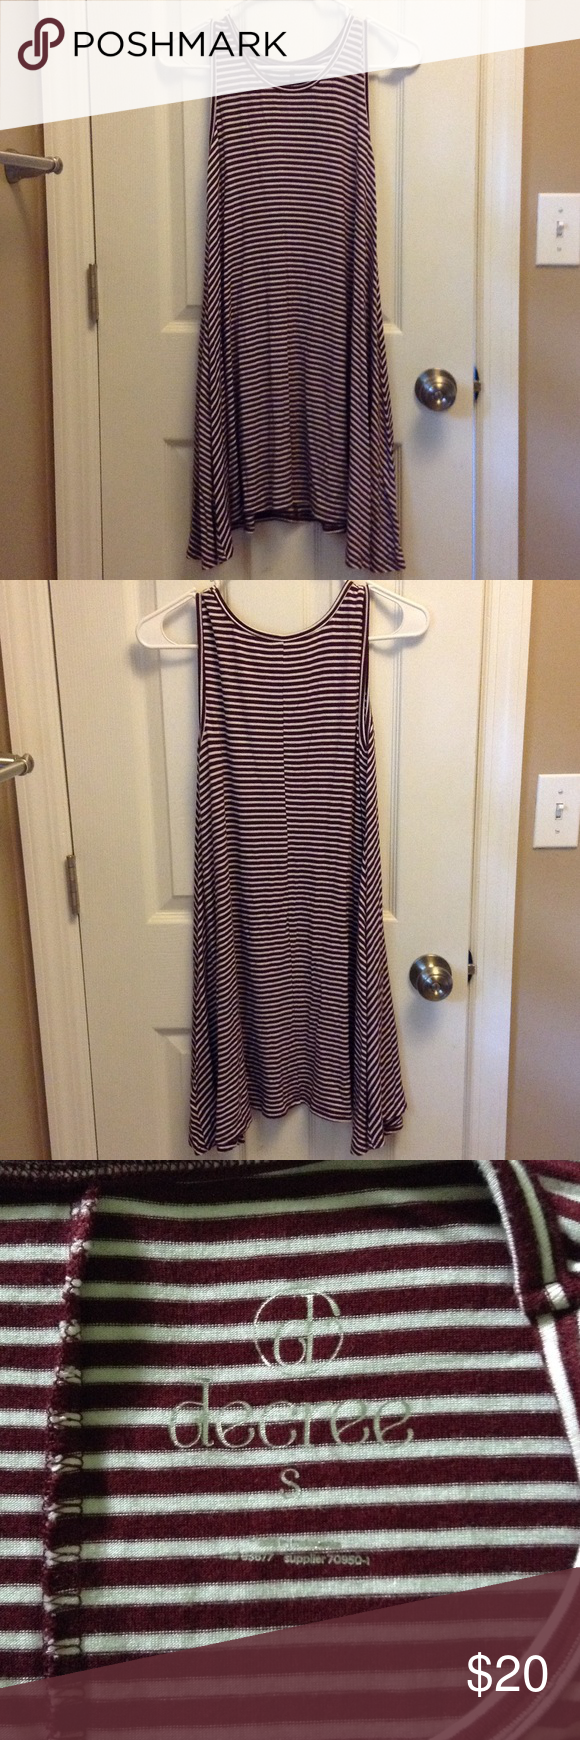 ba52981e11e3 Maroon striped tank dress Maroon   burgundy   wine color and white striped  dress